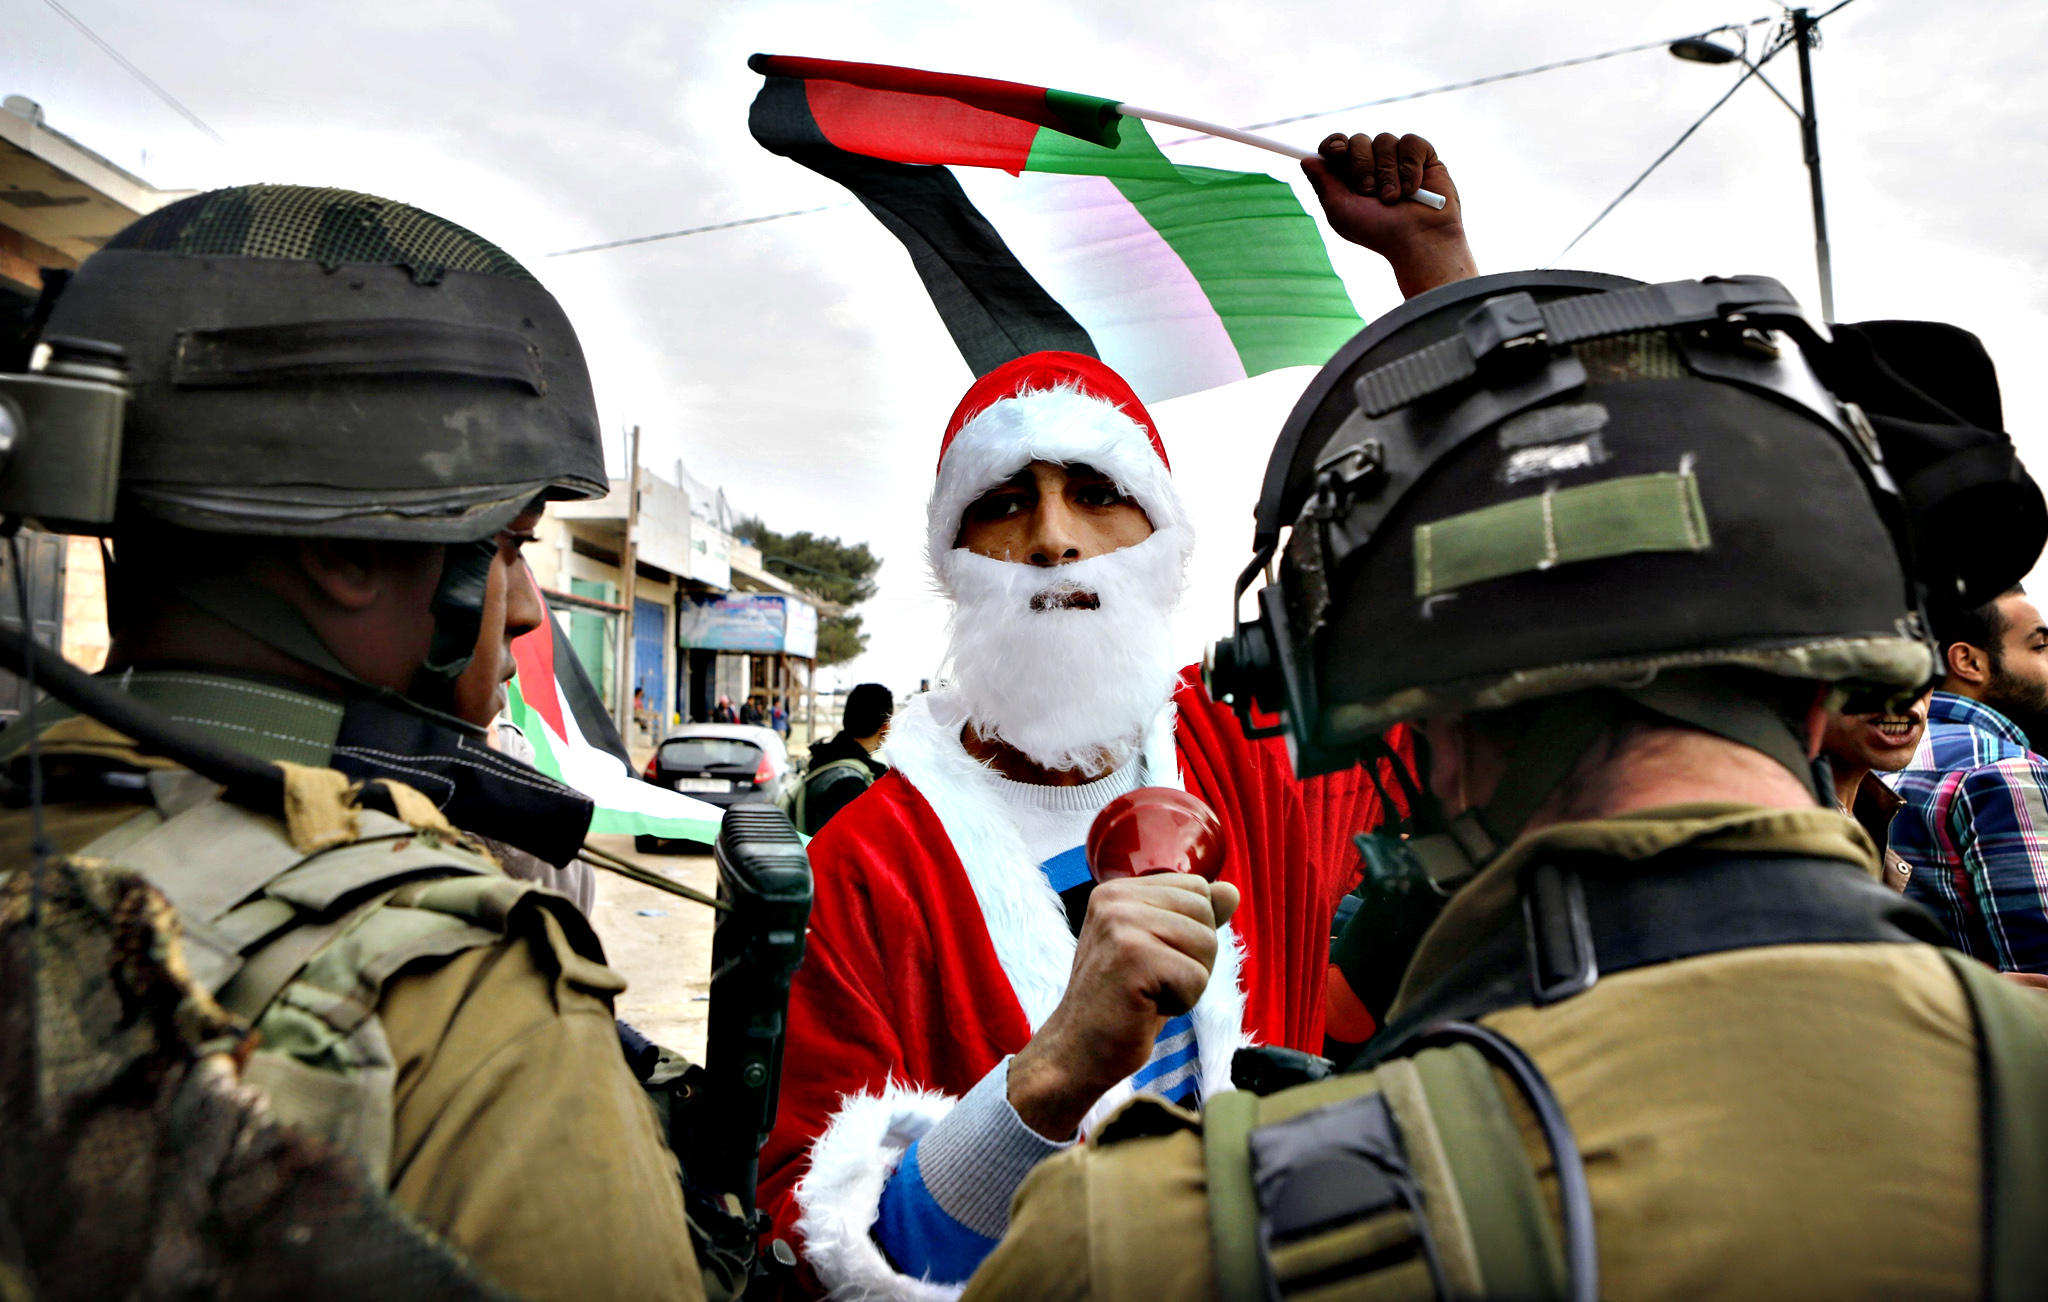 Palestinian protester dressed as Santa Claus holds a Palestinian flag as he argues with Israeli soldiers during a demonstration against Israeli settlements in the village of Maasara near the West Bank city of Bethlehem...A Palestinian protester dressed as Santa Claus holds a Palestinian flag as he argues with Israeli soldiers during a demonstration against Israeli settlements in the village of Maasara near the West Bank city of Bethlehem December 19, 2014.